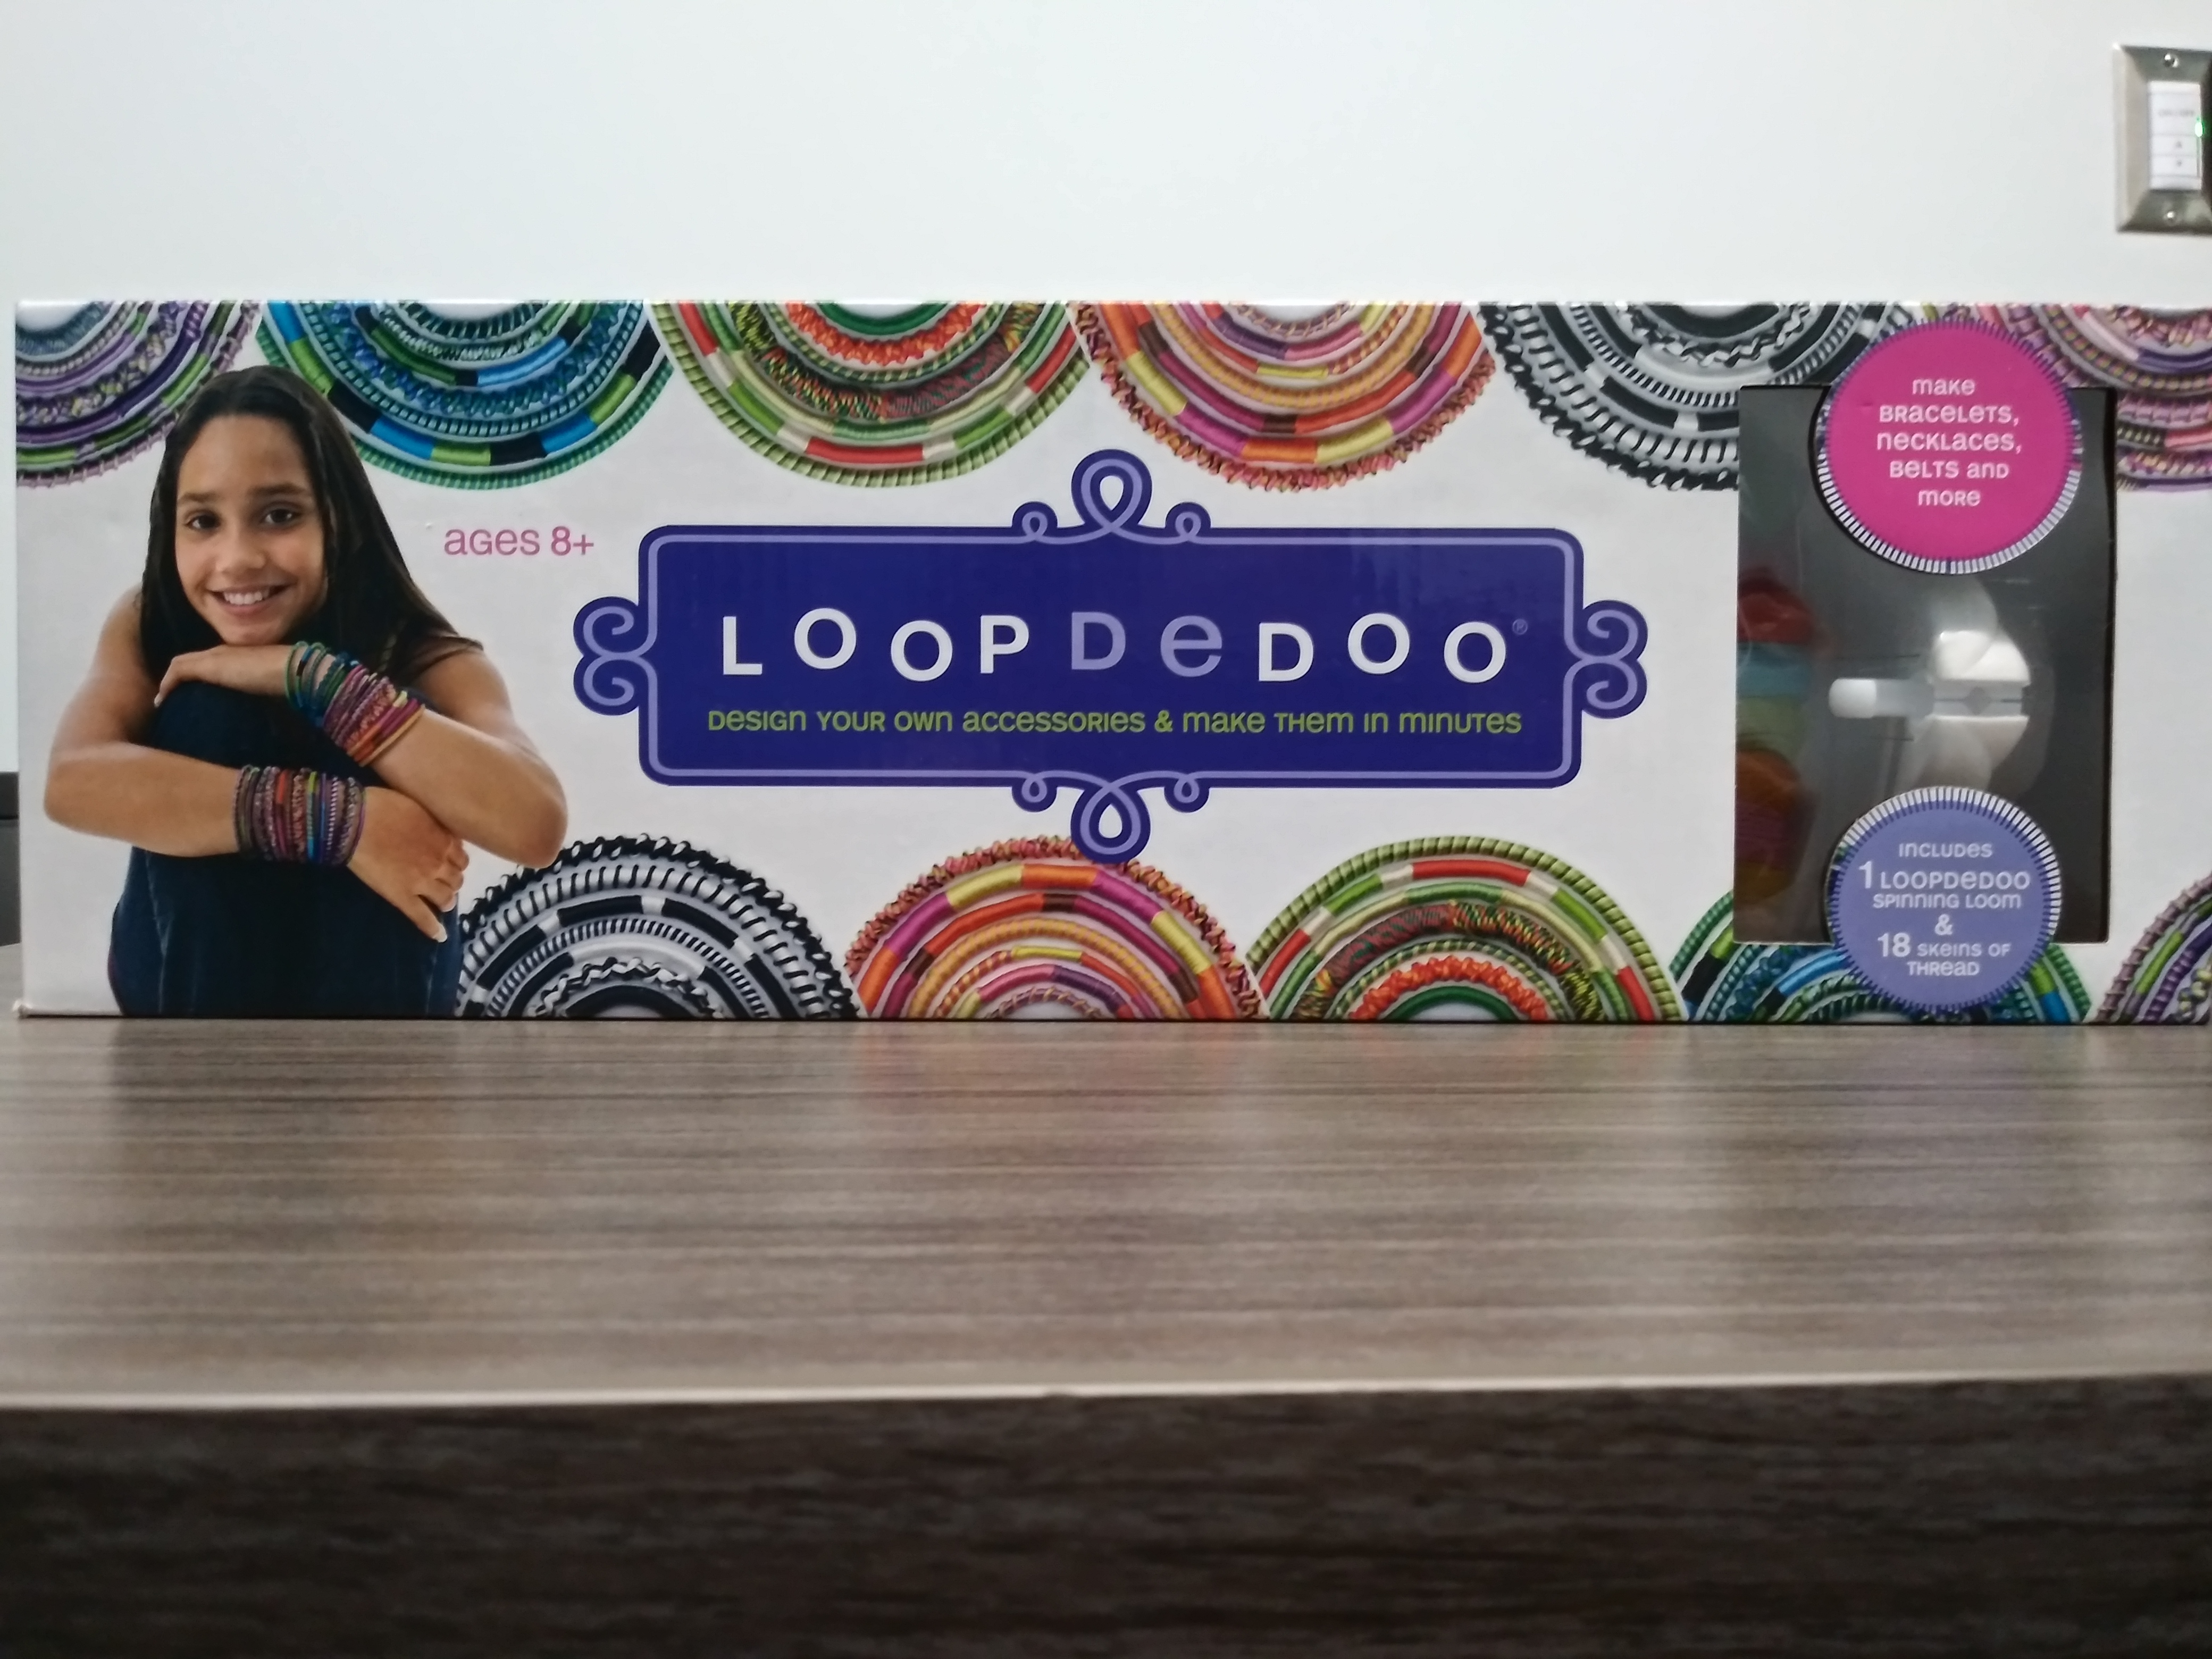 Loom Set - Loopdedoo (brand name) Make bracelets, necklaces, belts and more.